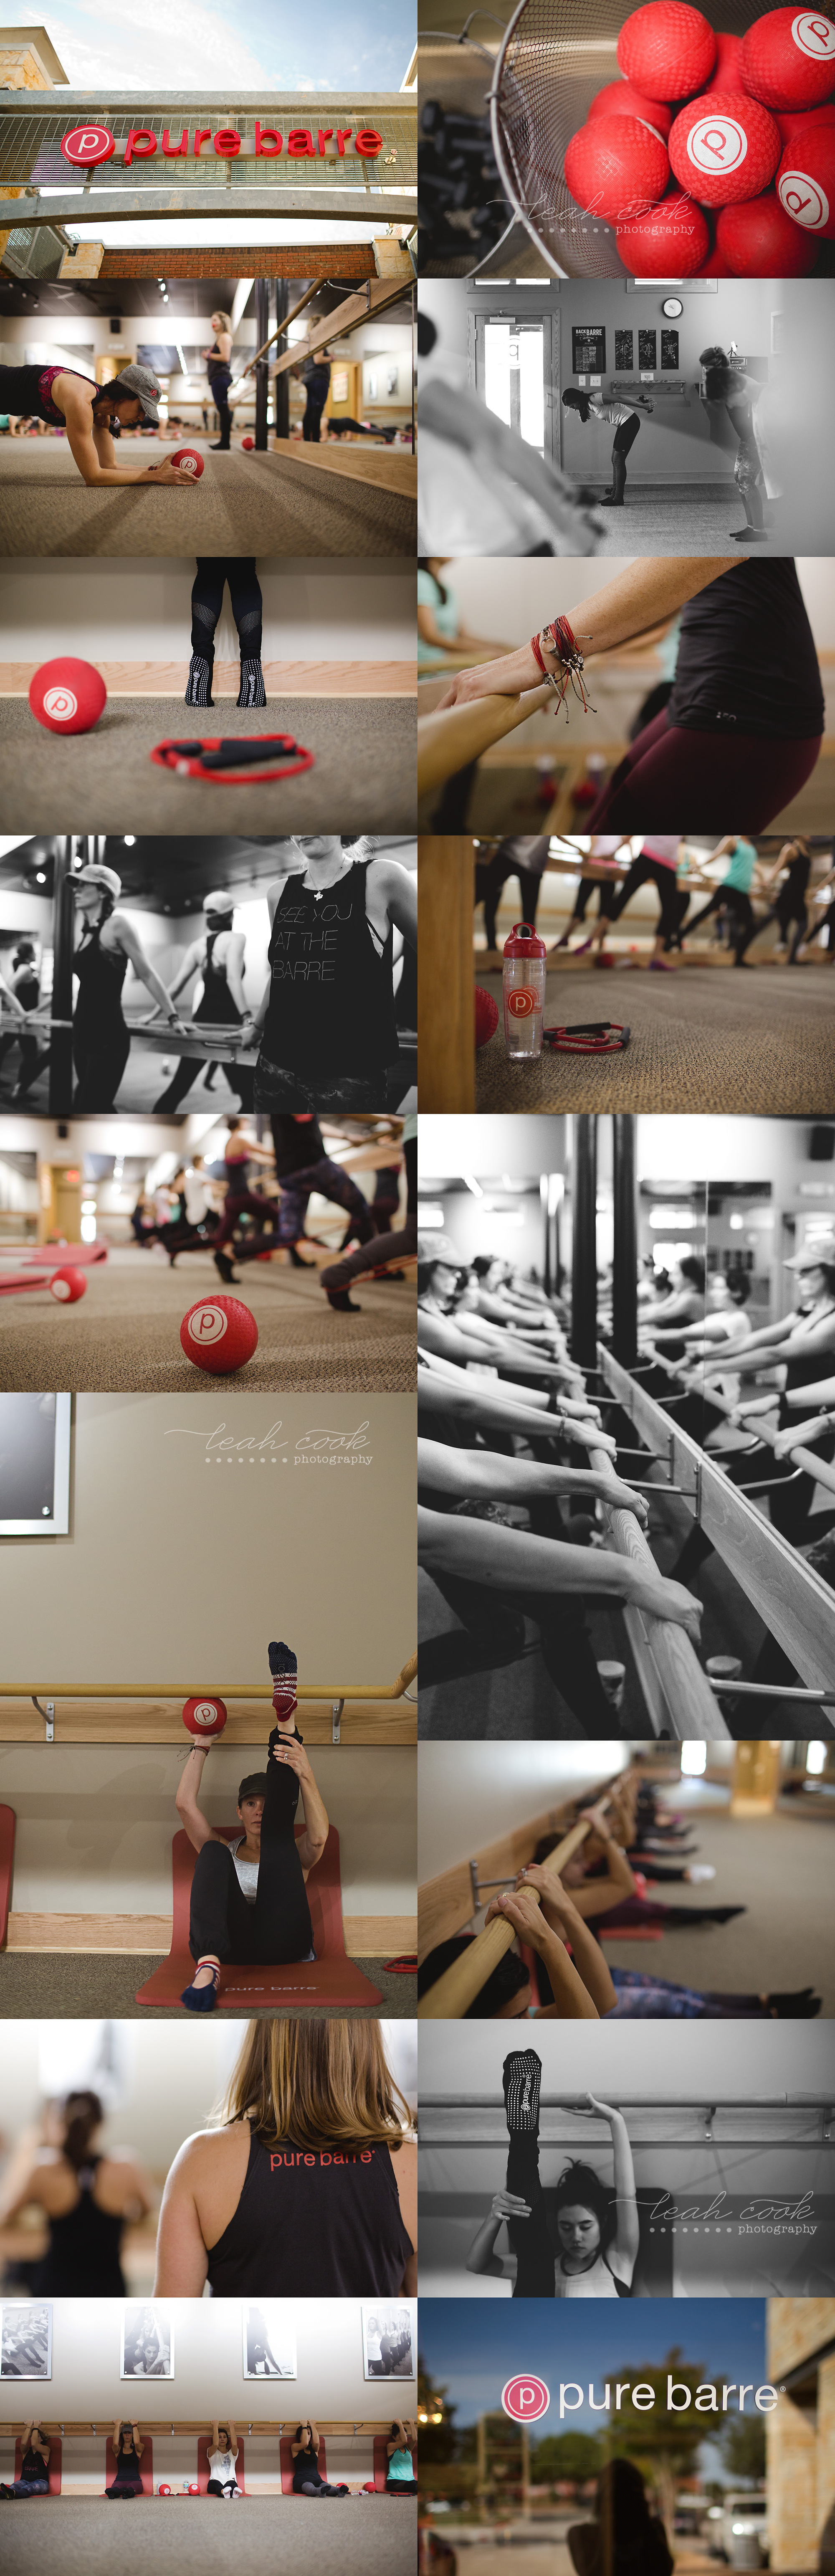 leah cook | pure barre-02